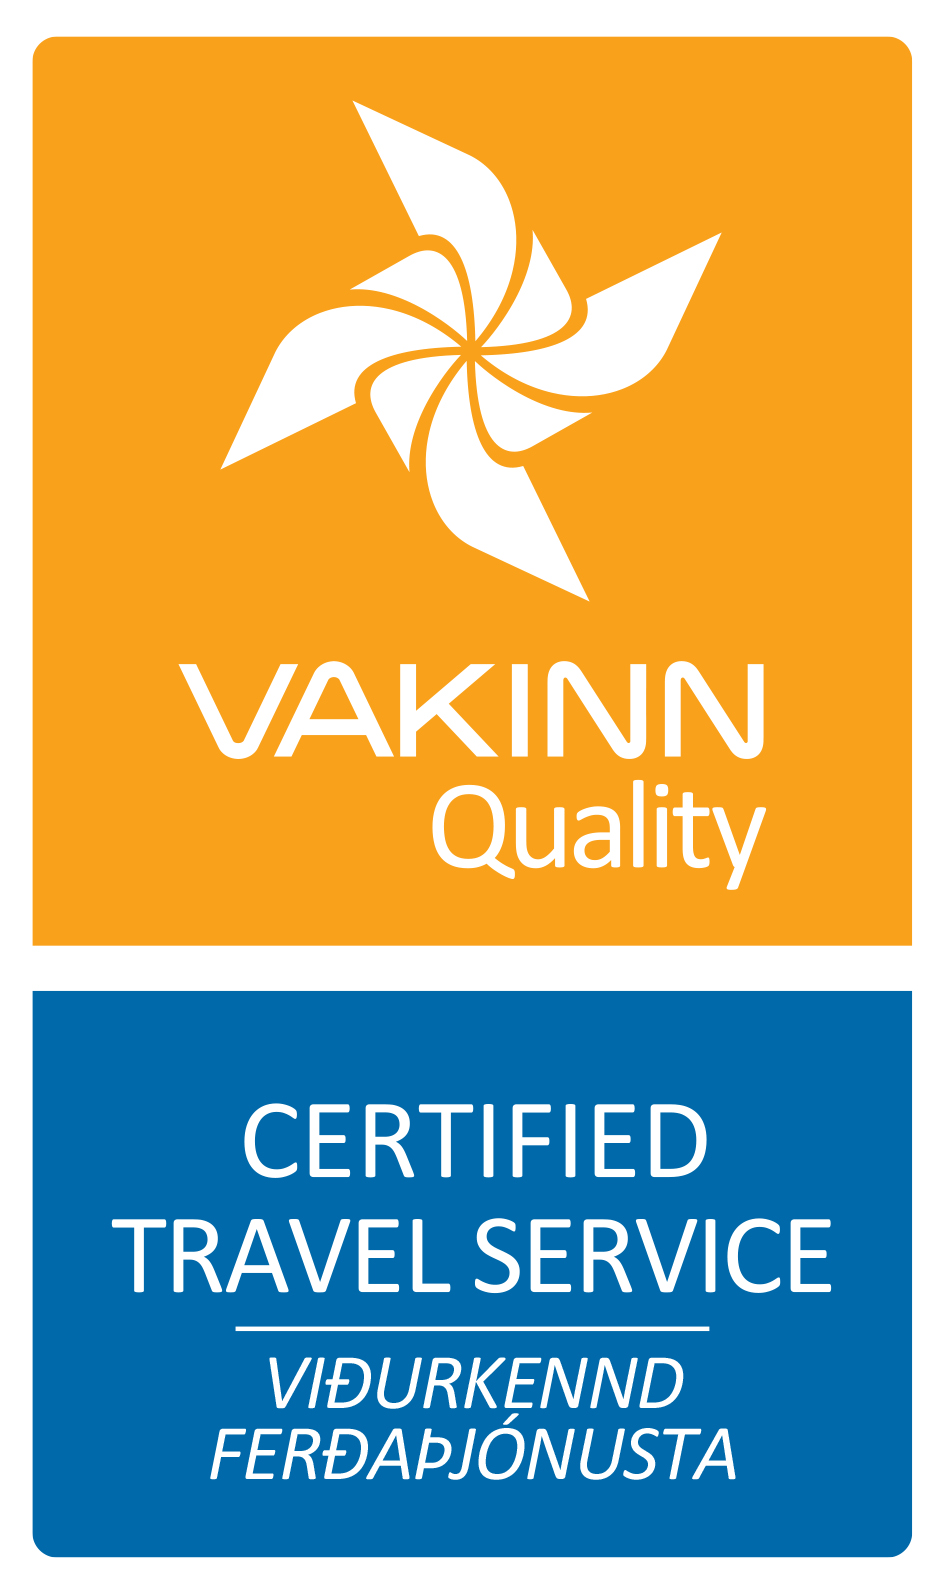 http://www.vakinn.is/